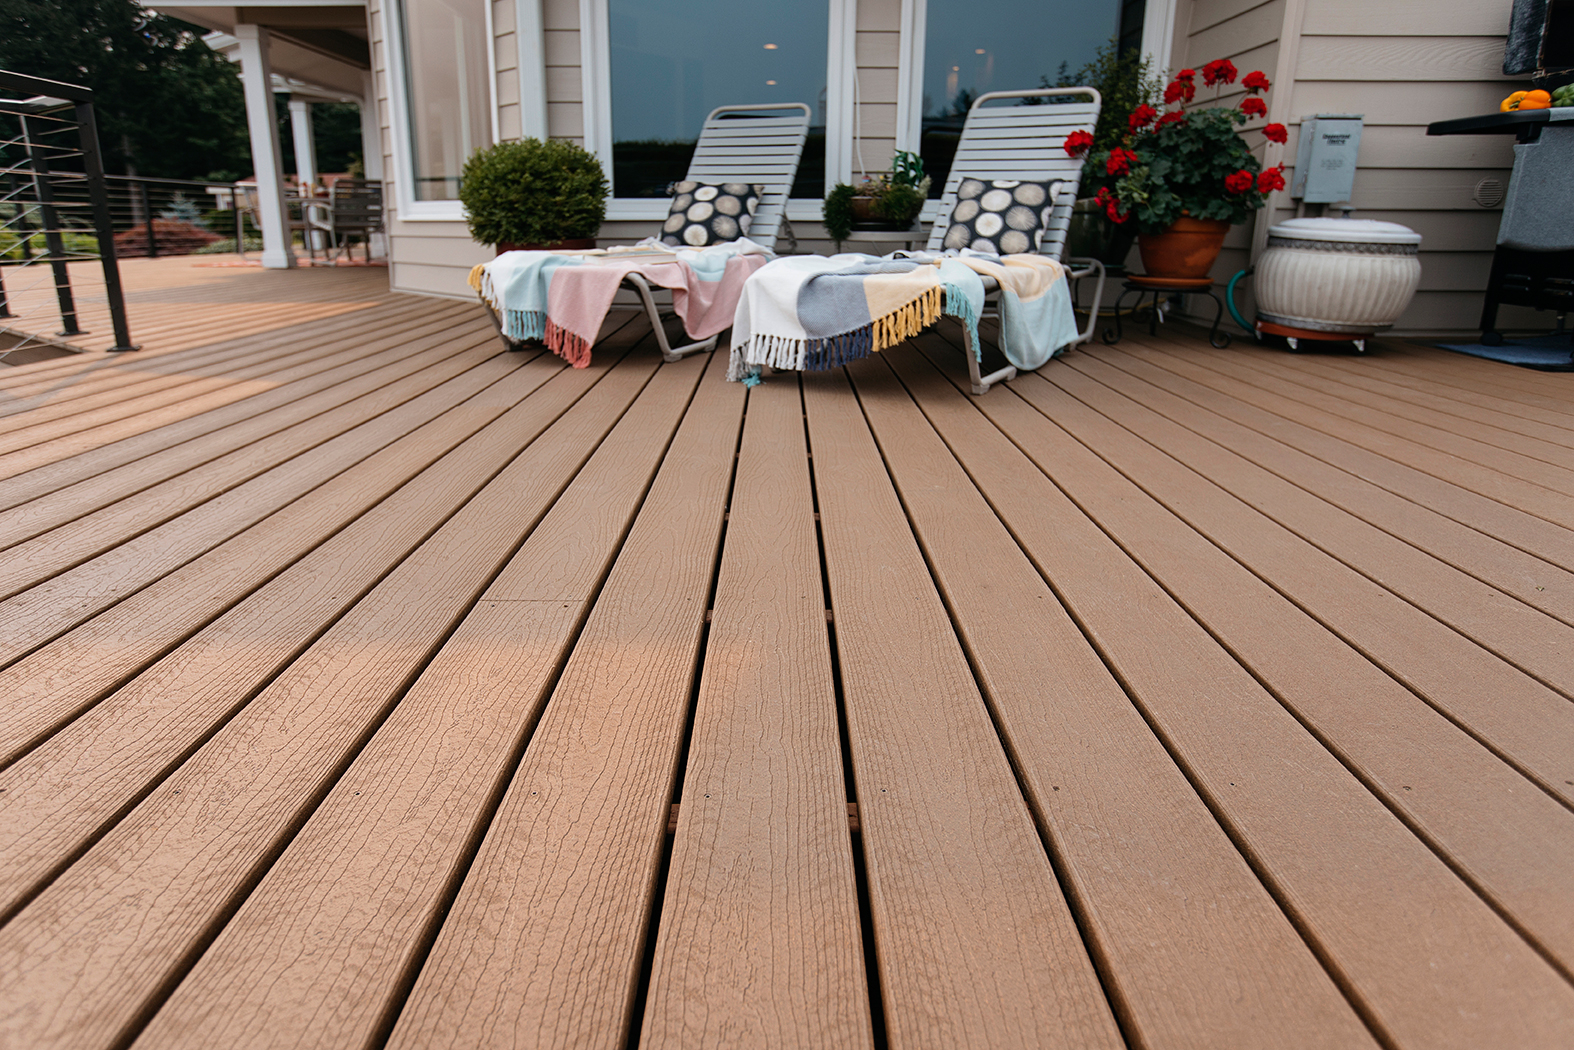 Weathered Wood Tamko Envision Decking intended for dimensions 1574 X 1050